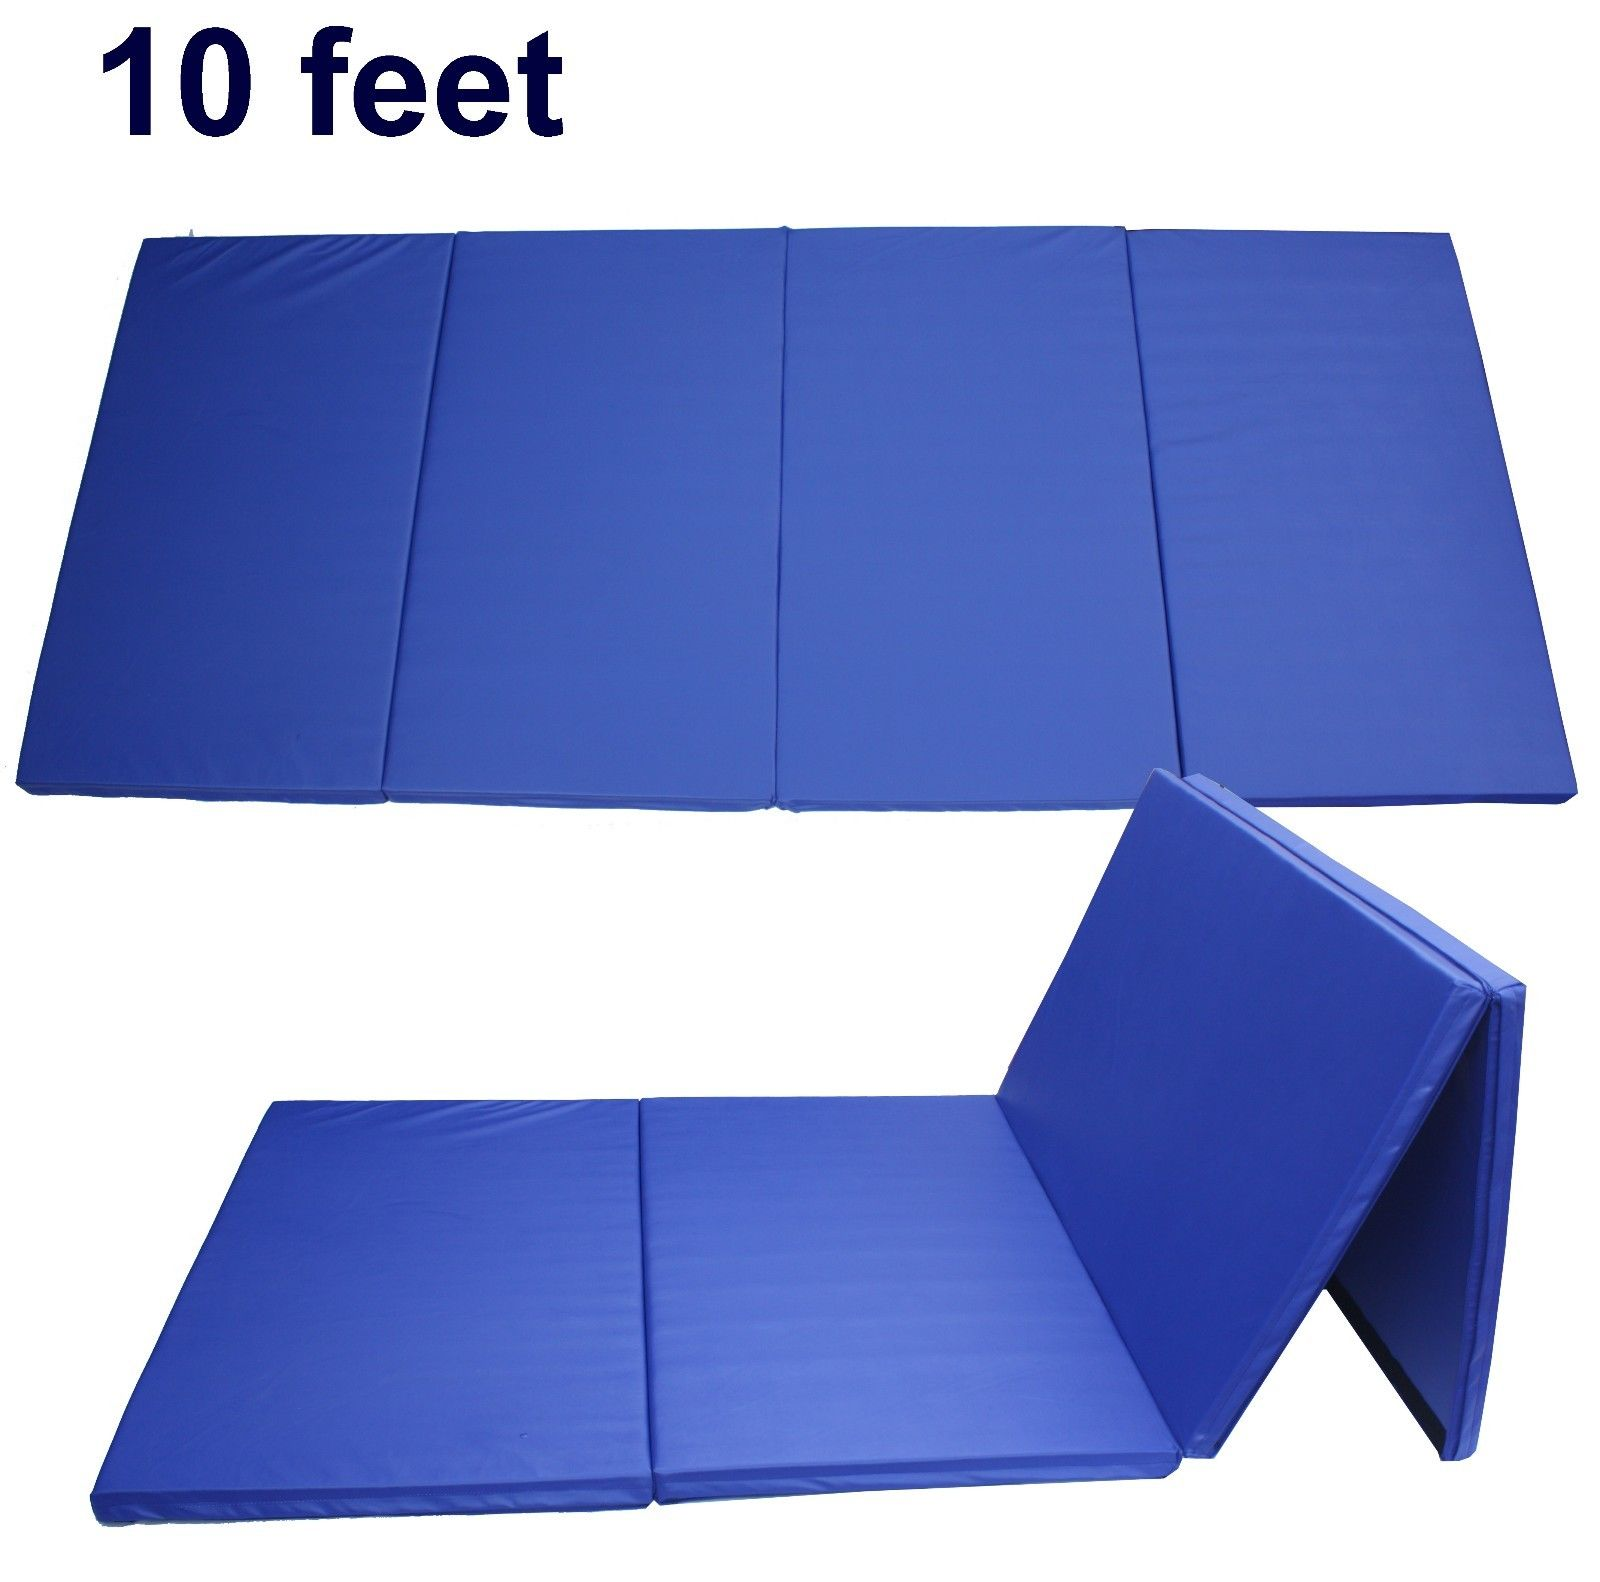 classic home gymnastics products sale mats for cheap gymnastic uk